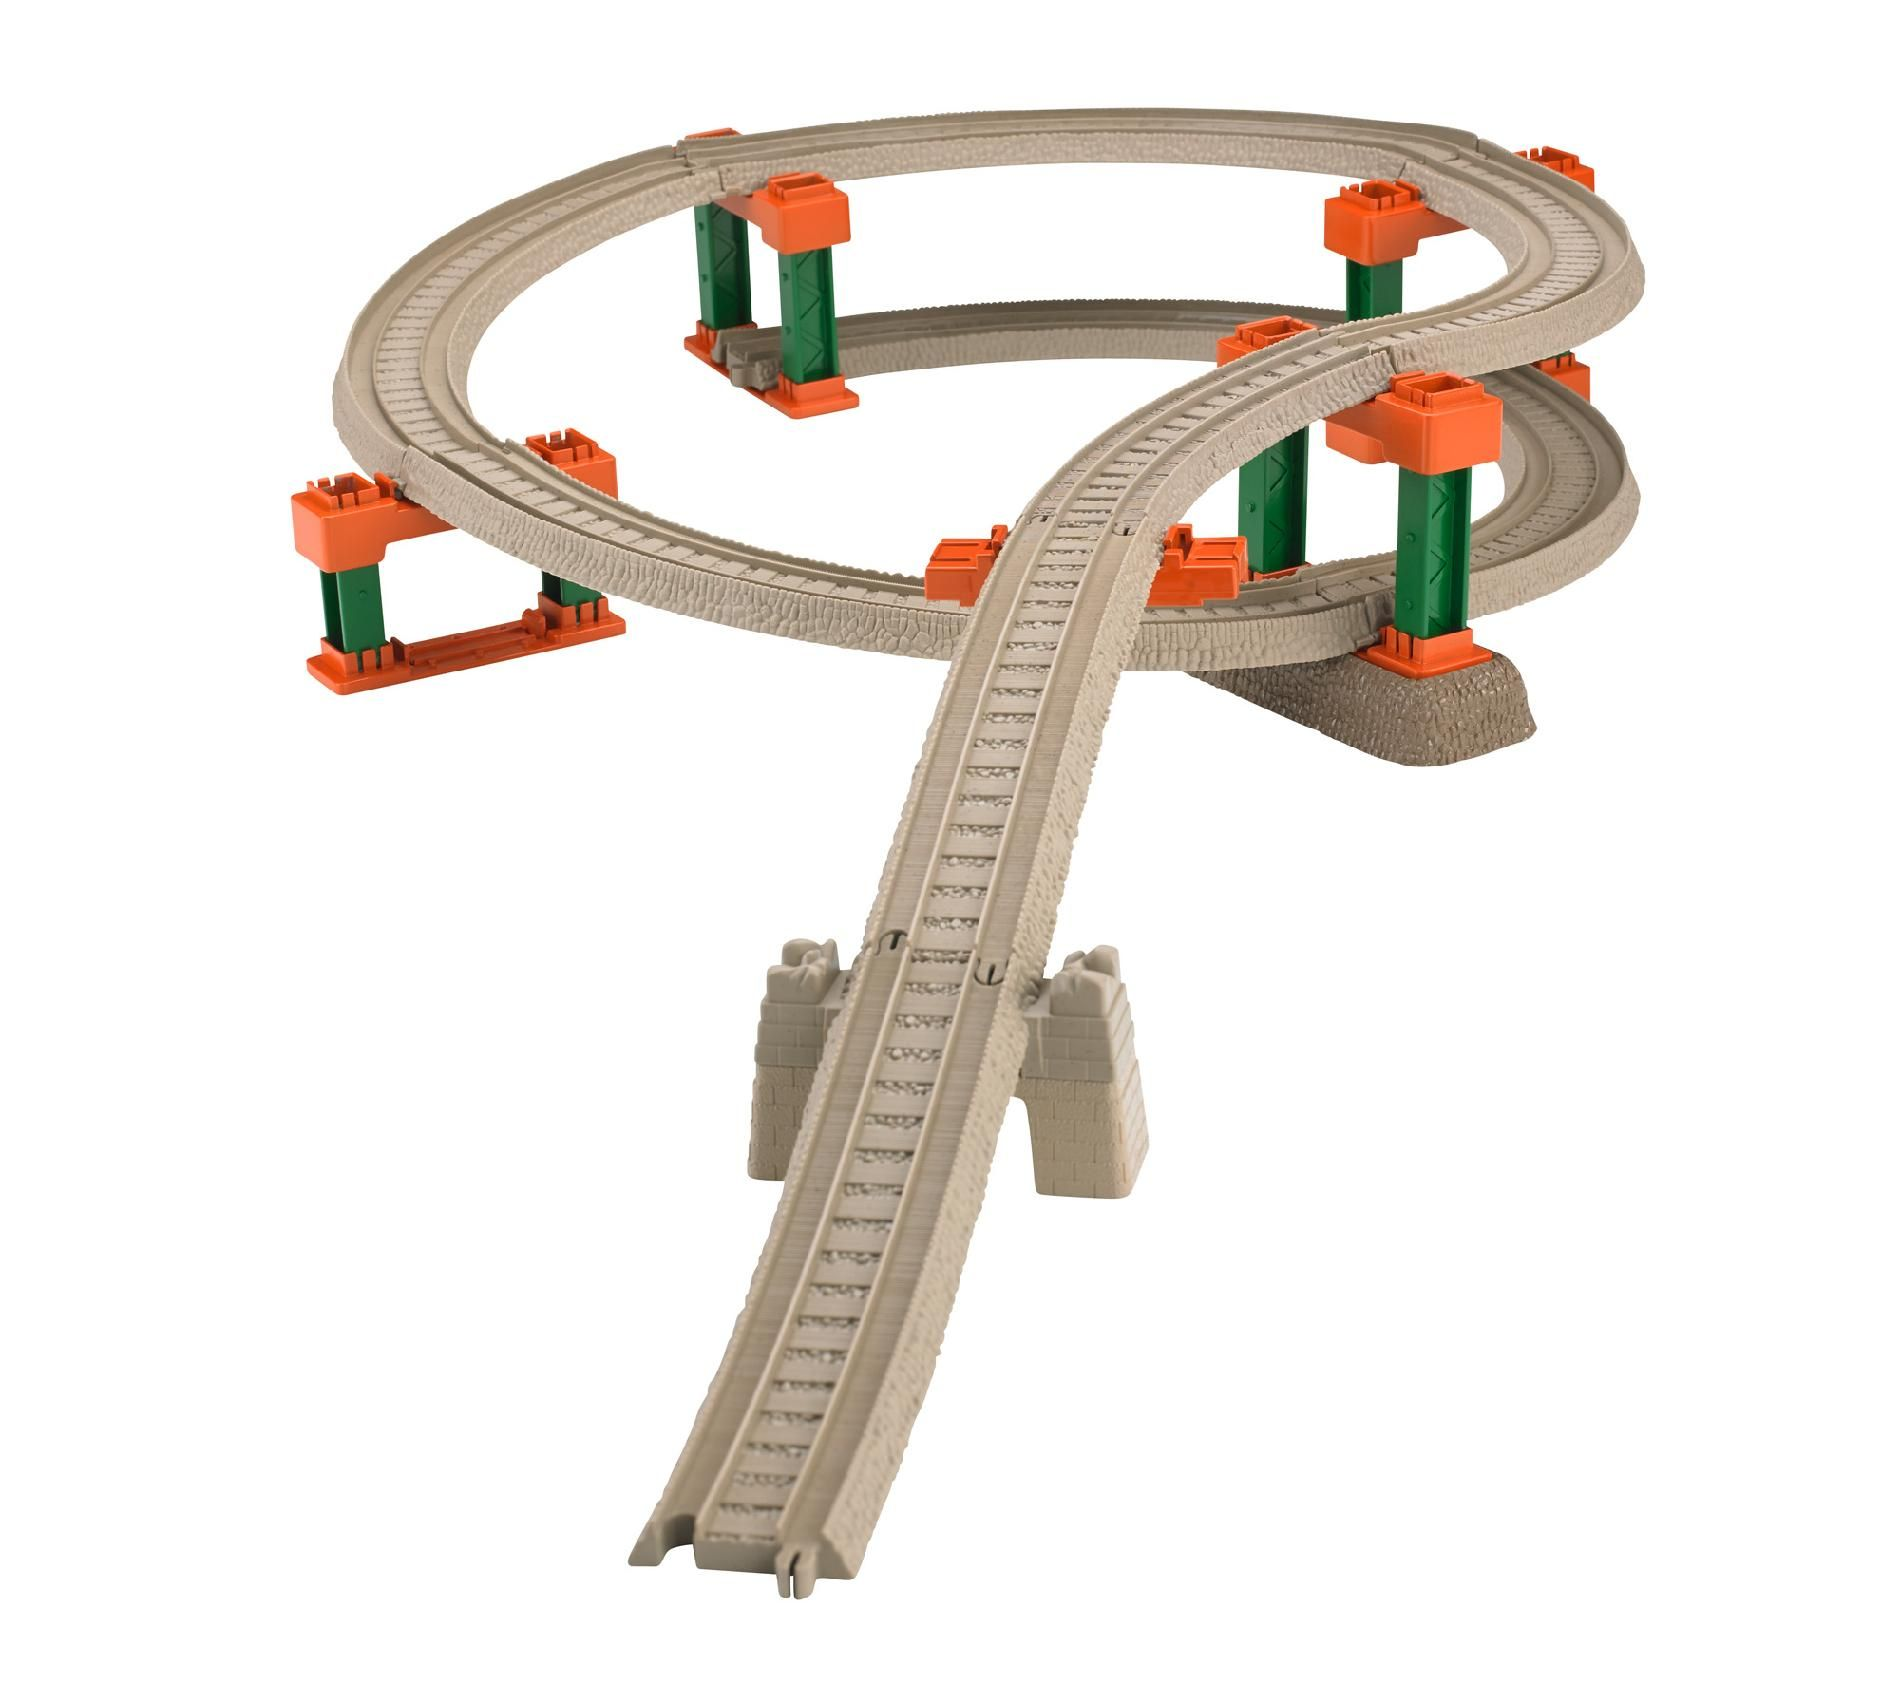 Fisher price thomas amp friends trackmaster treasure chase set new - Fisher Price Thomas The Train Trackmaster Deluxe Spiral Track Pack